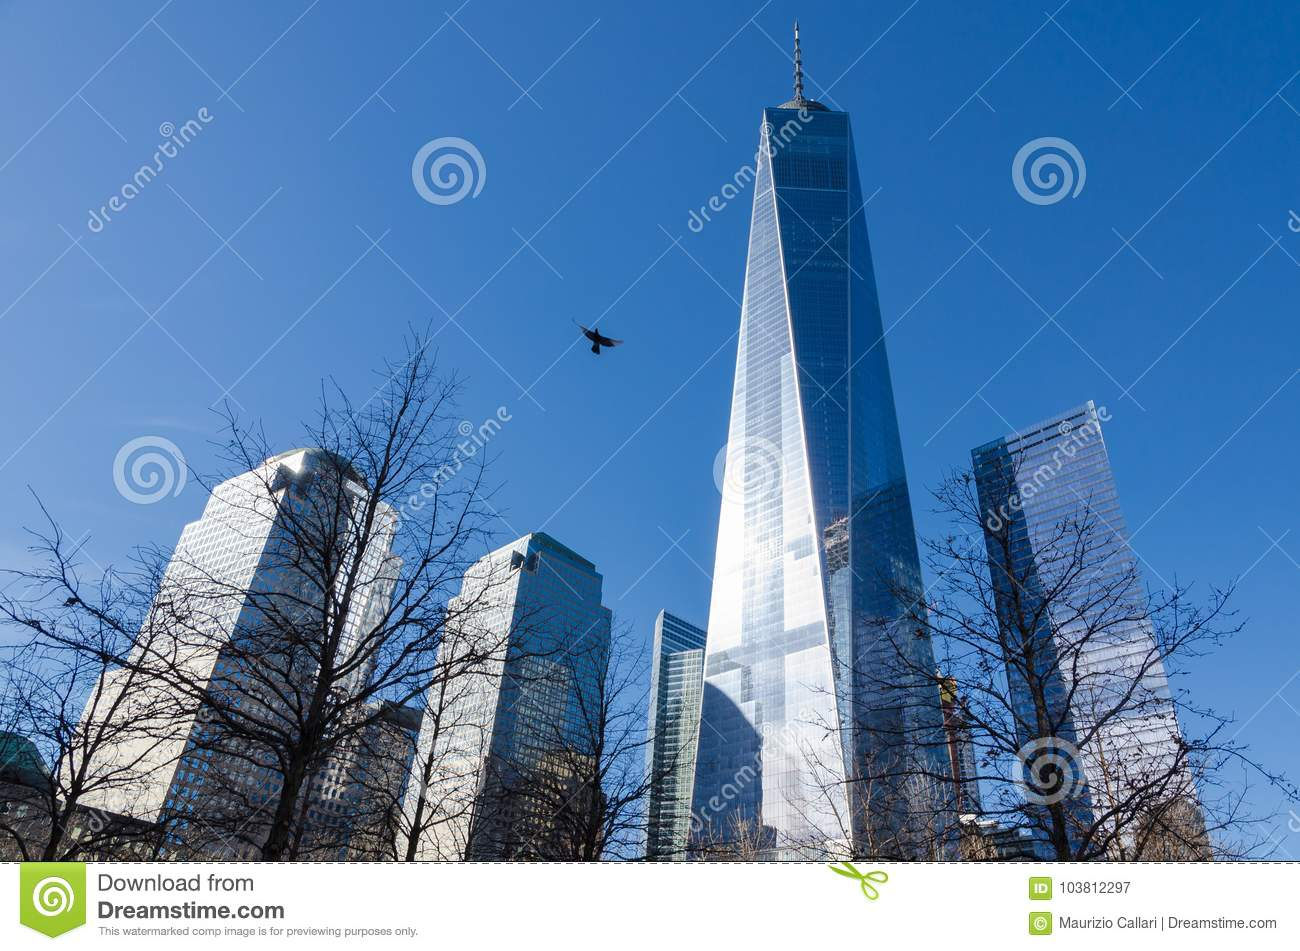 Low-angle view of One World Trade Centre, New York